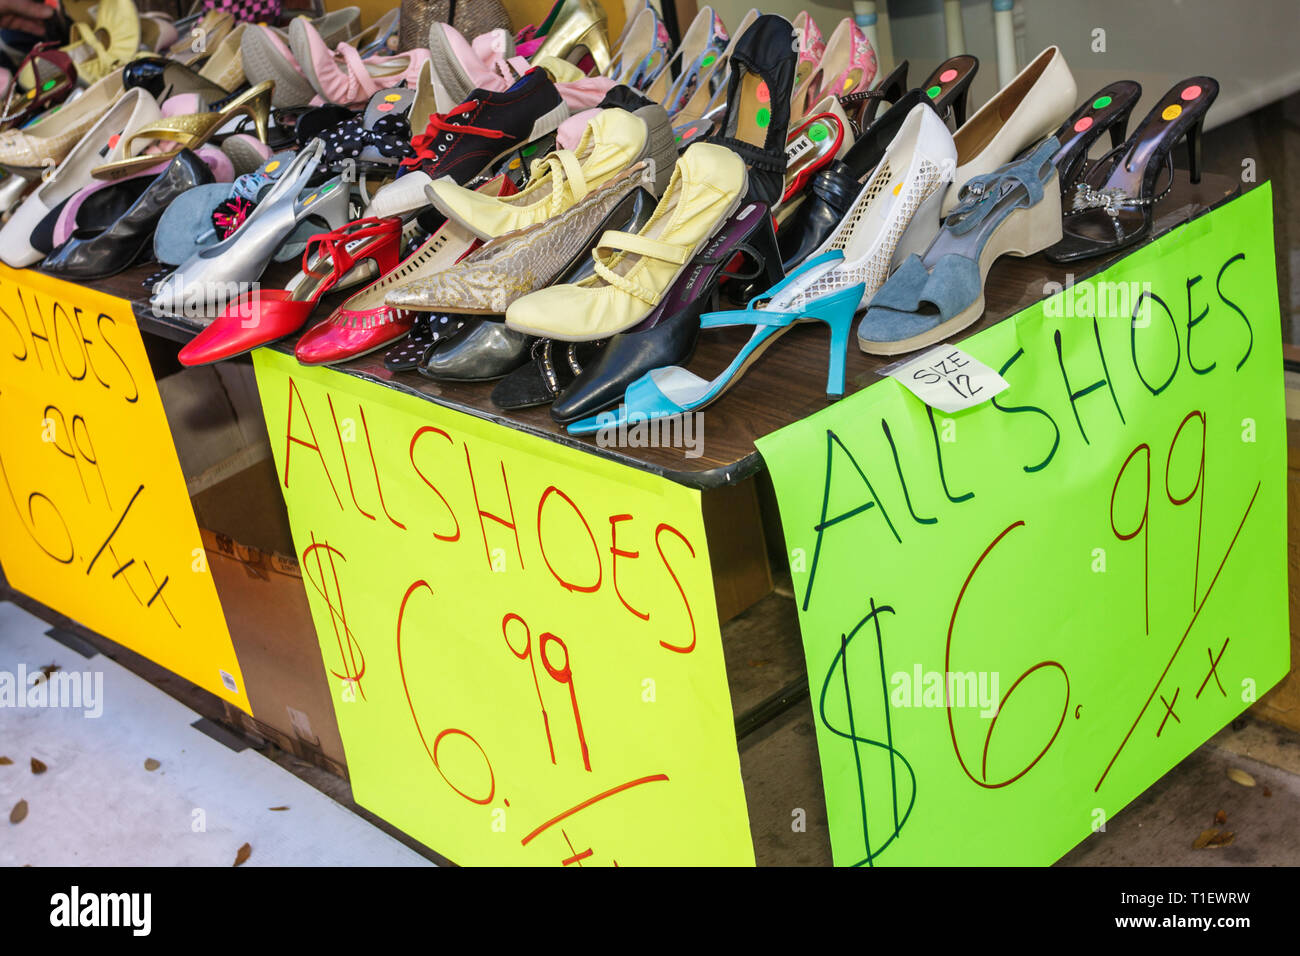 Miami Coral Gables Miami Florida Coral Way Miracle Mile store shop small business sidewalk sale sign price shoes bargain Stock Photo